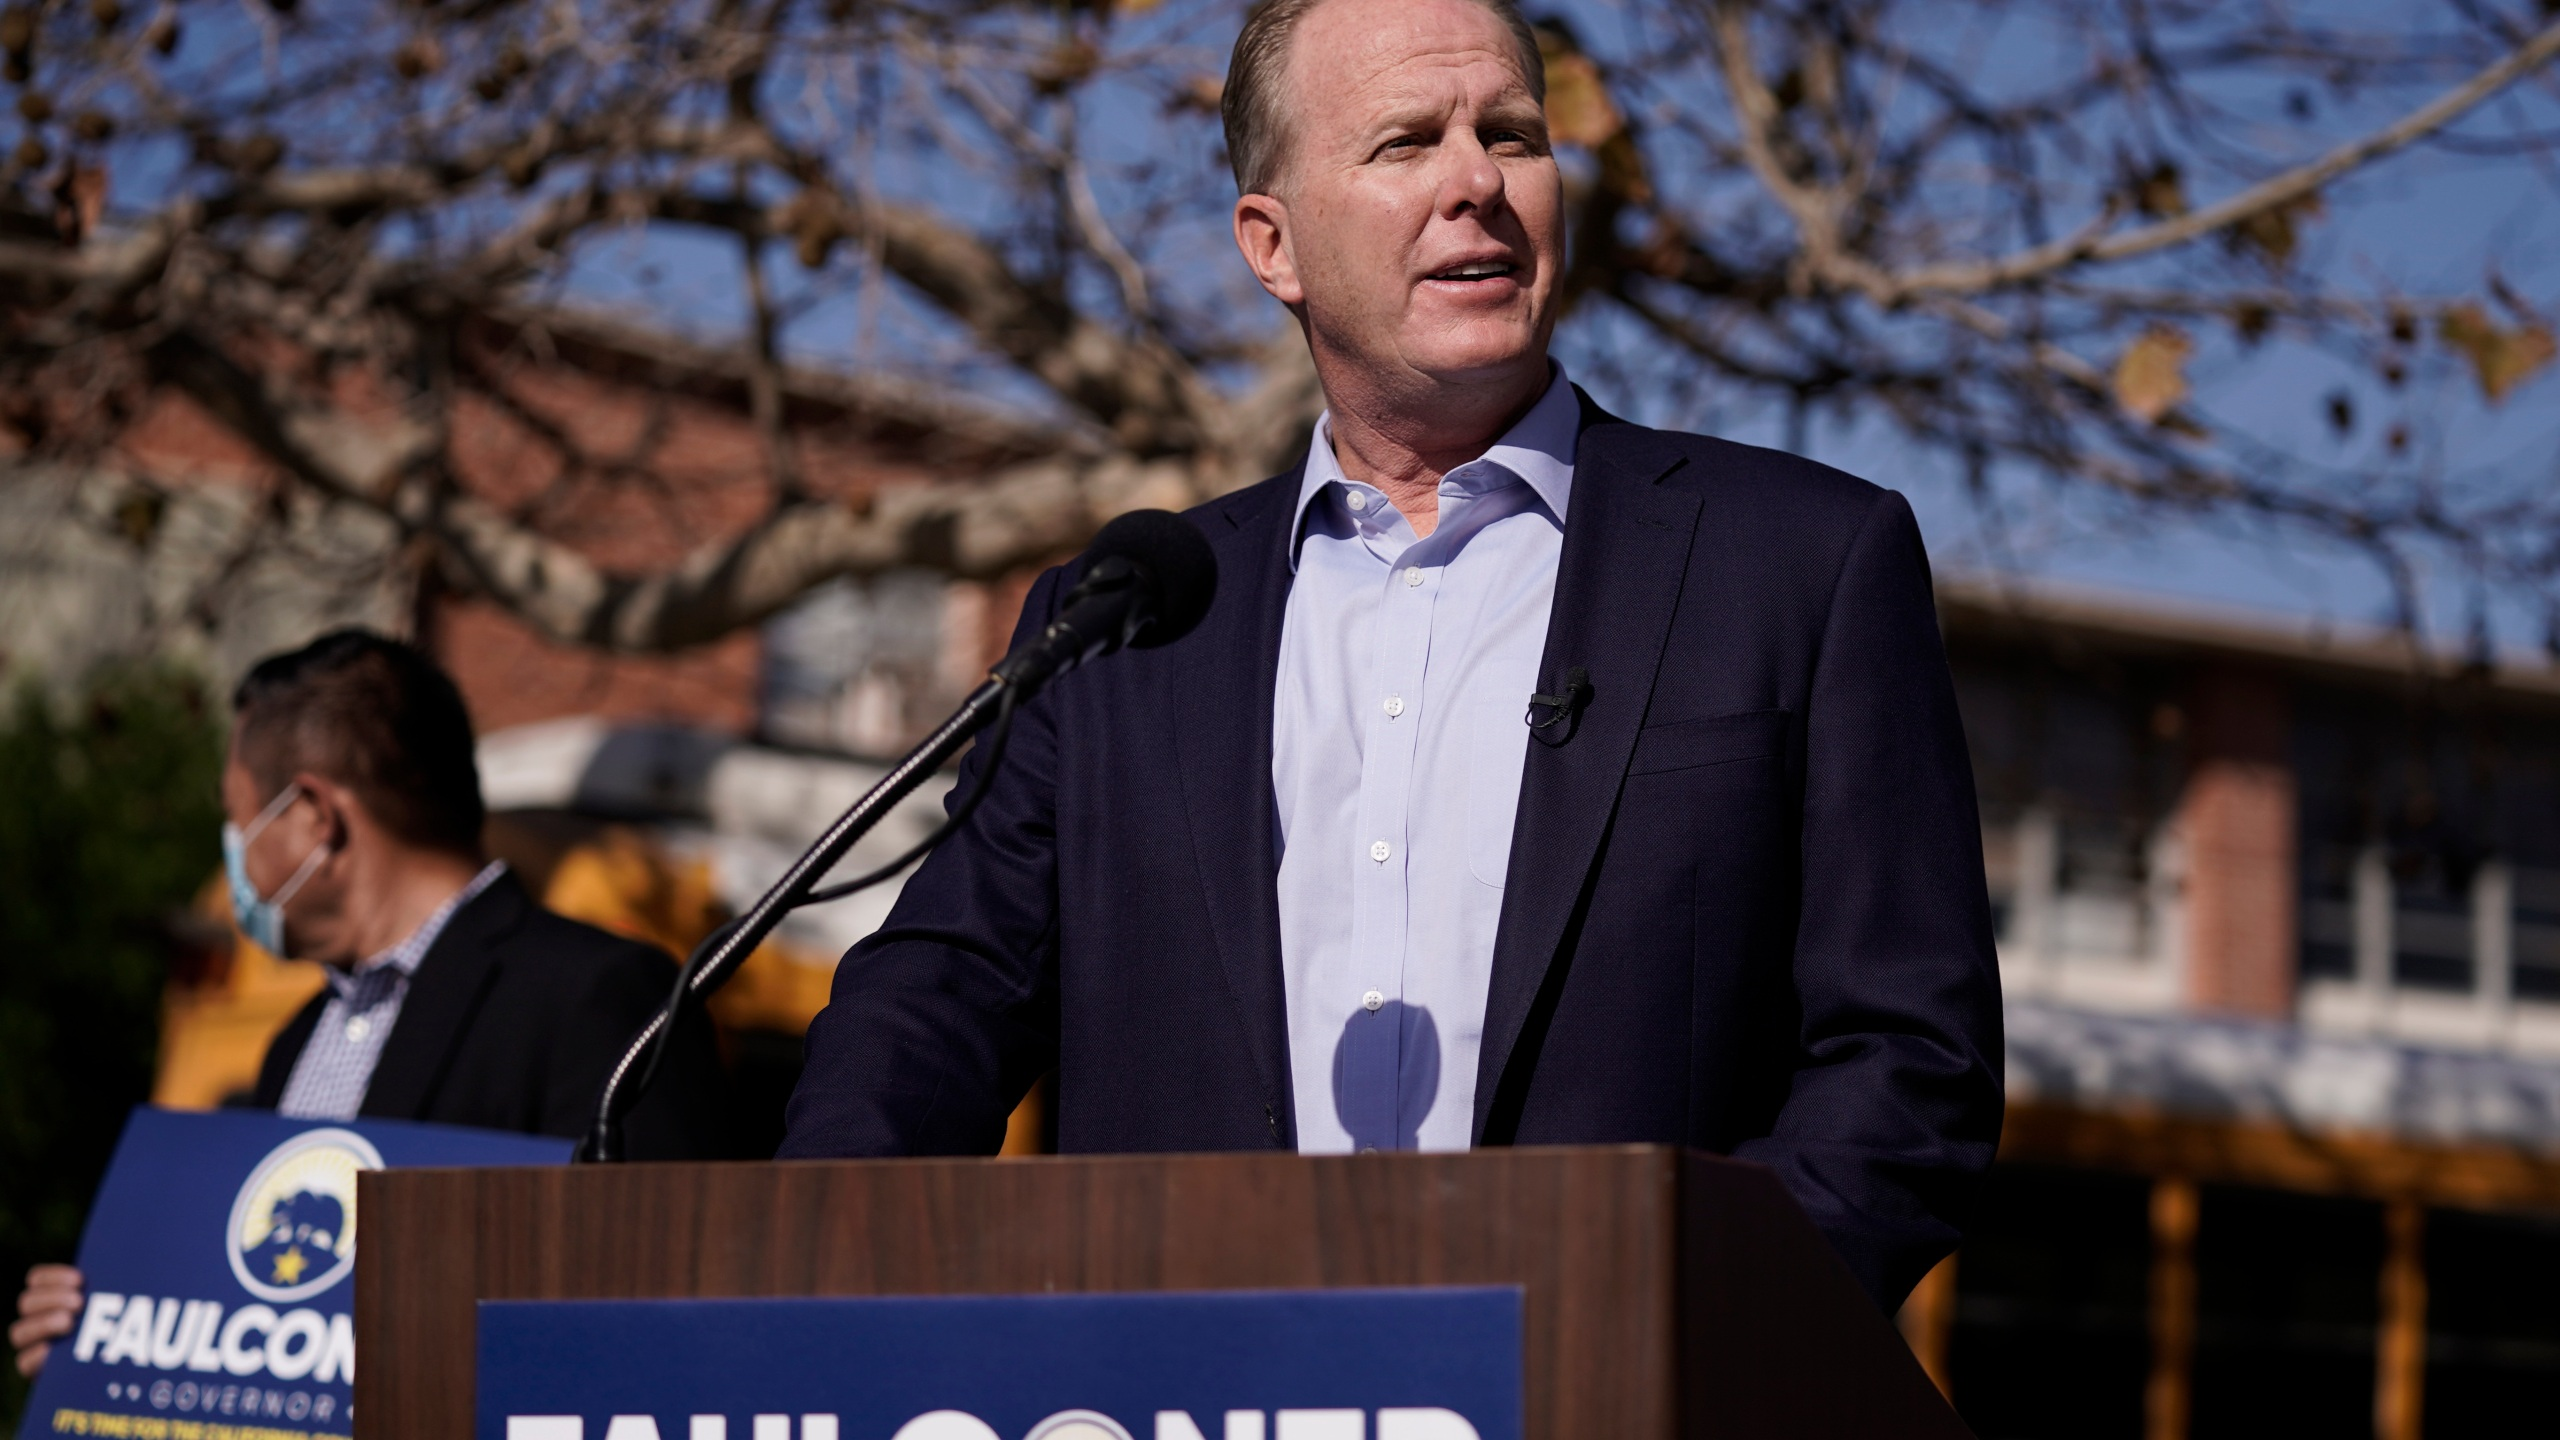 In this Feb. 2, 2021, file photo, Republican gubernatorial candidate Kevin Faulconer speaks during a news conference in the San Pedro section of Los Angeles. Faulconer announced Wednesday, May 12, 2021, that he wants to eliminate state income tax for some low- and middle-income people if he's elected. He would need support in the Democratically controlled state Legislature. (AP Photo/Jae C. Hong, File)